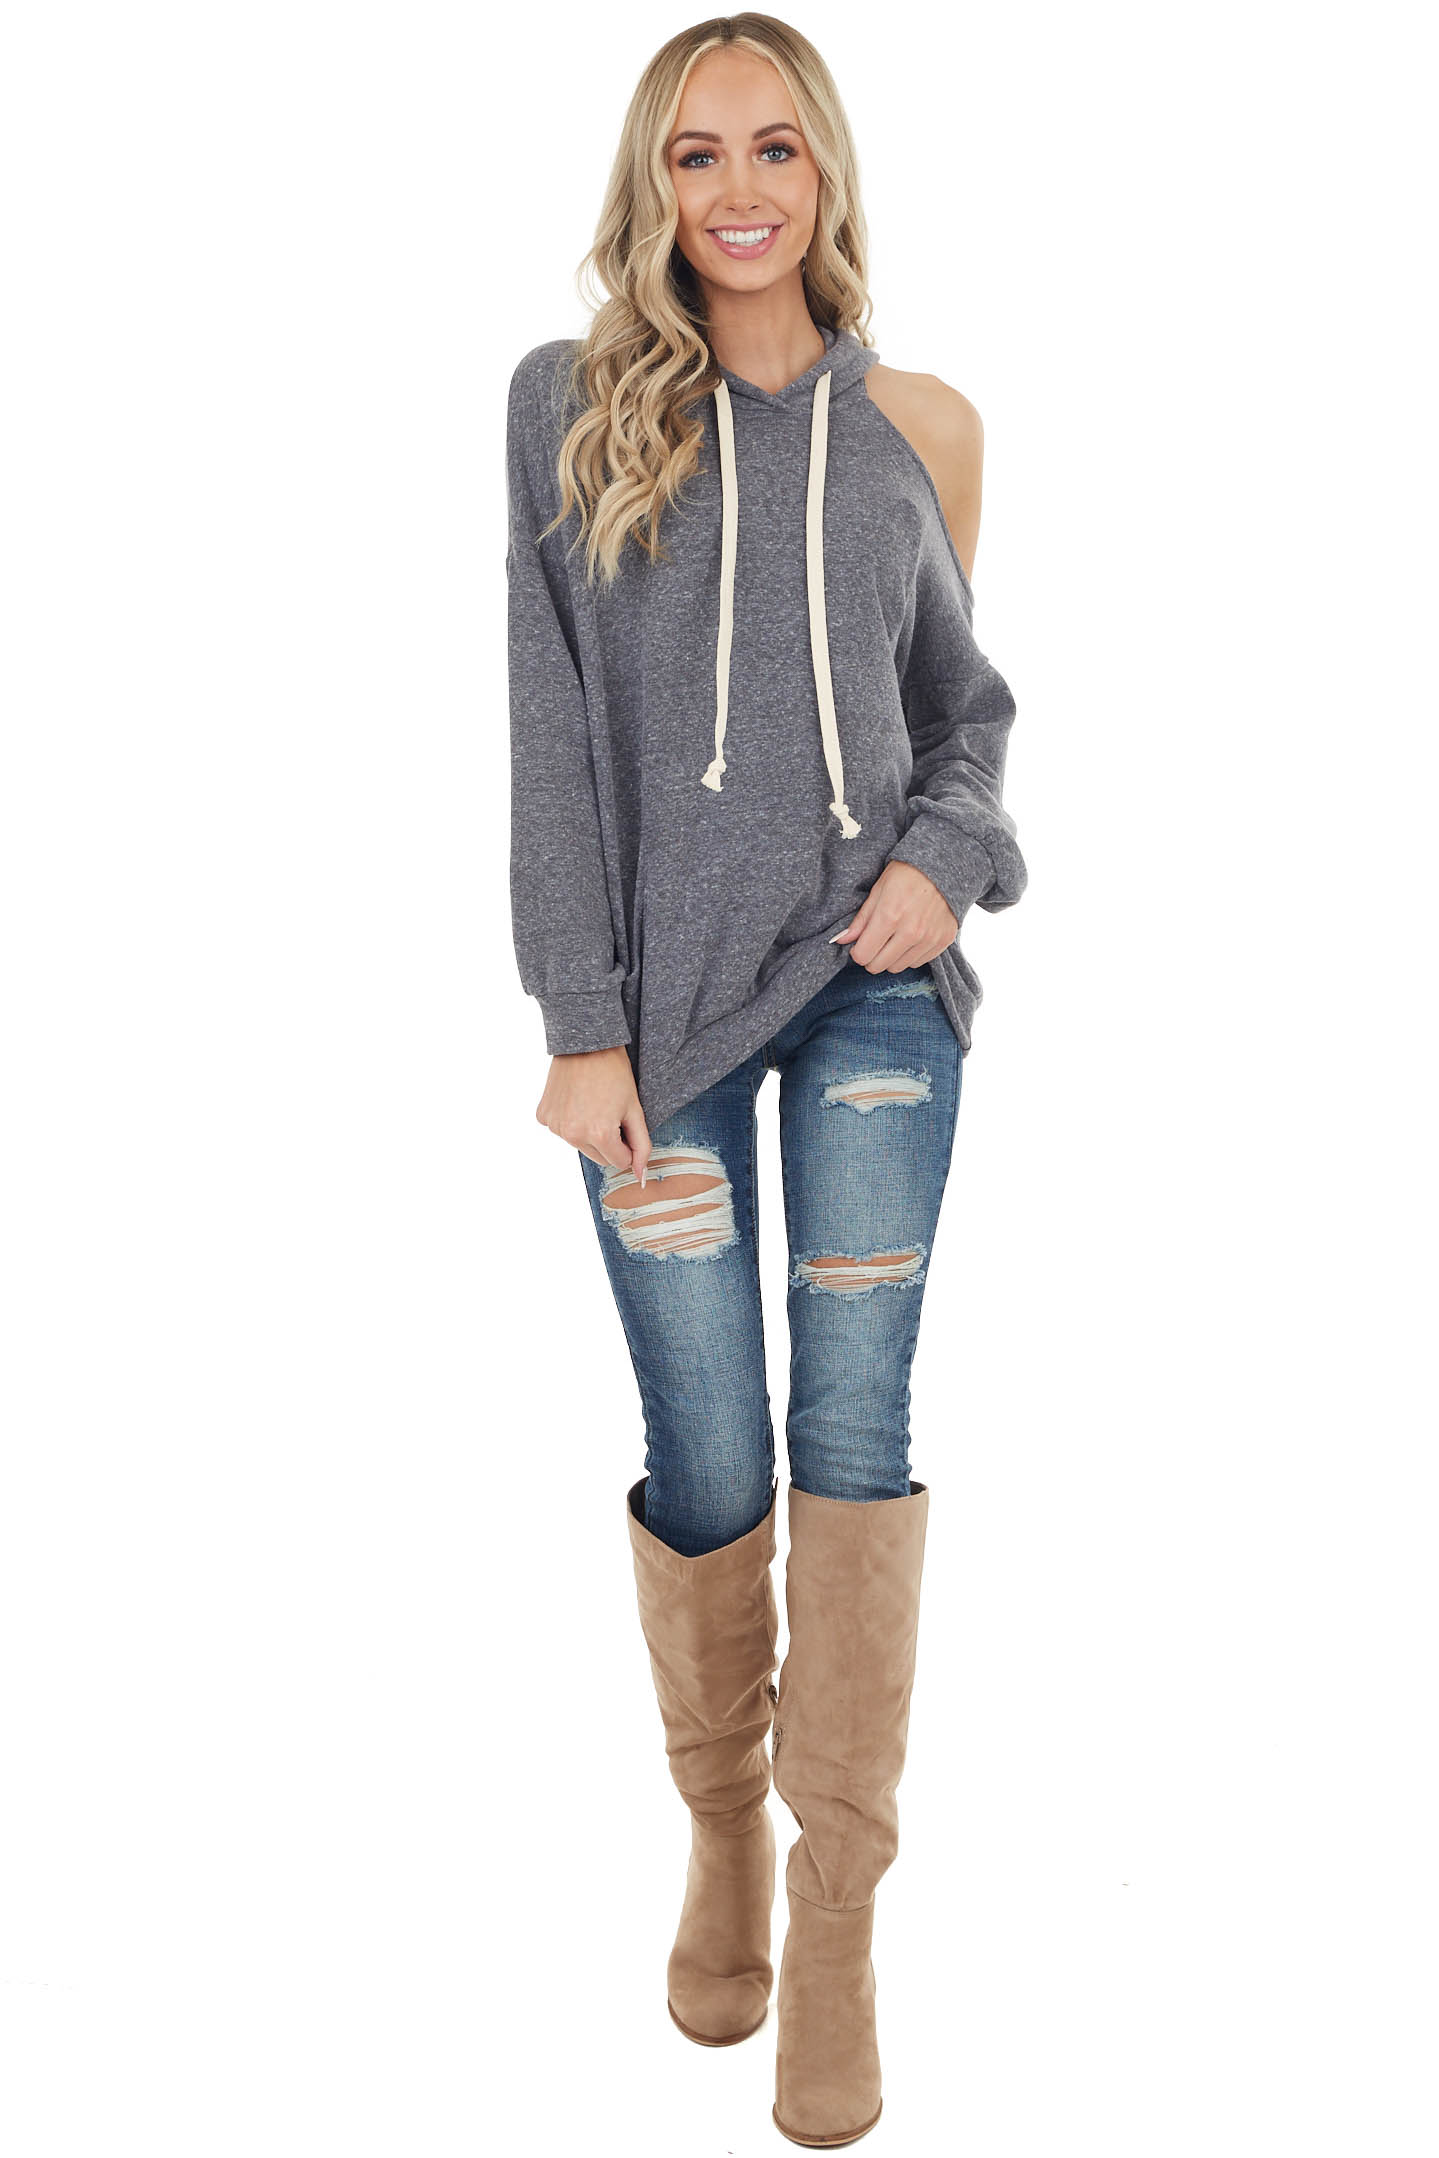 Heathered Charcoal Fleece Lined Hoodie with Cold Shoulder